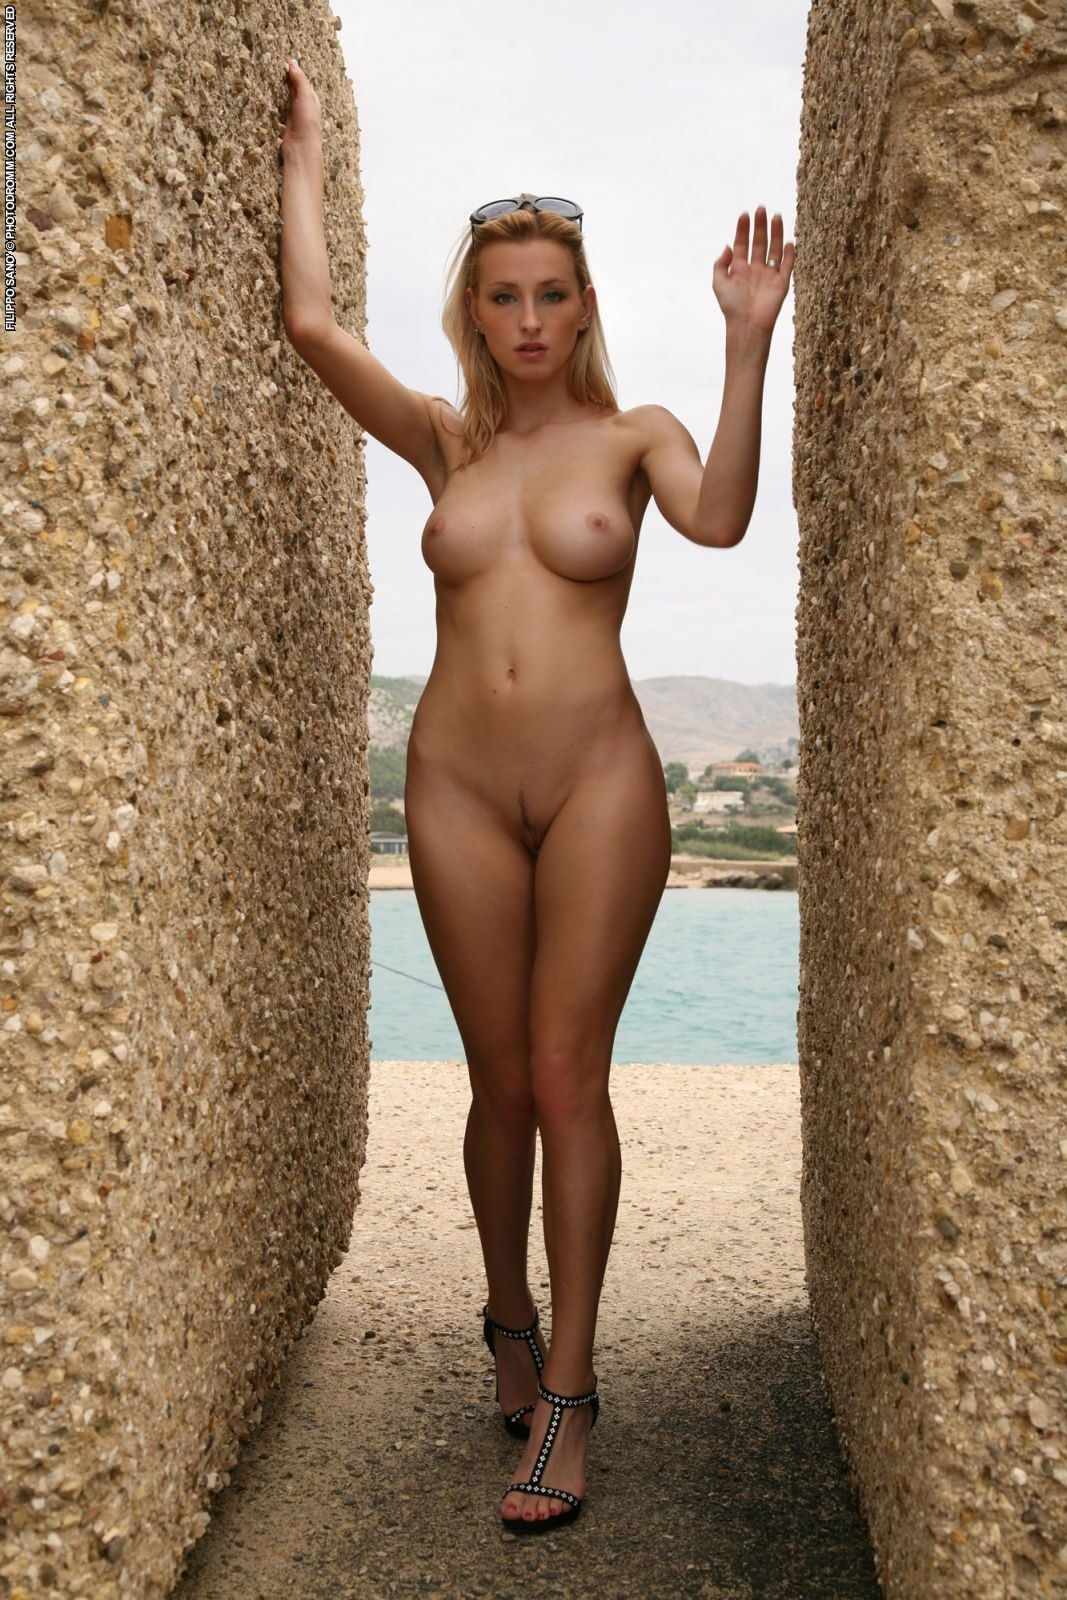 Shaved woman OR Full AND AND (female AND nude frontal